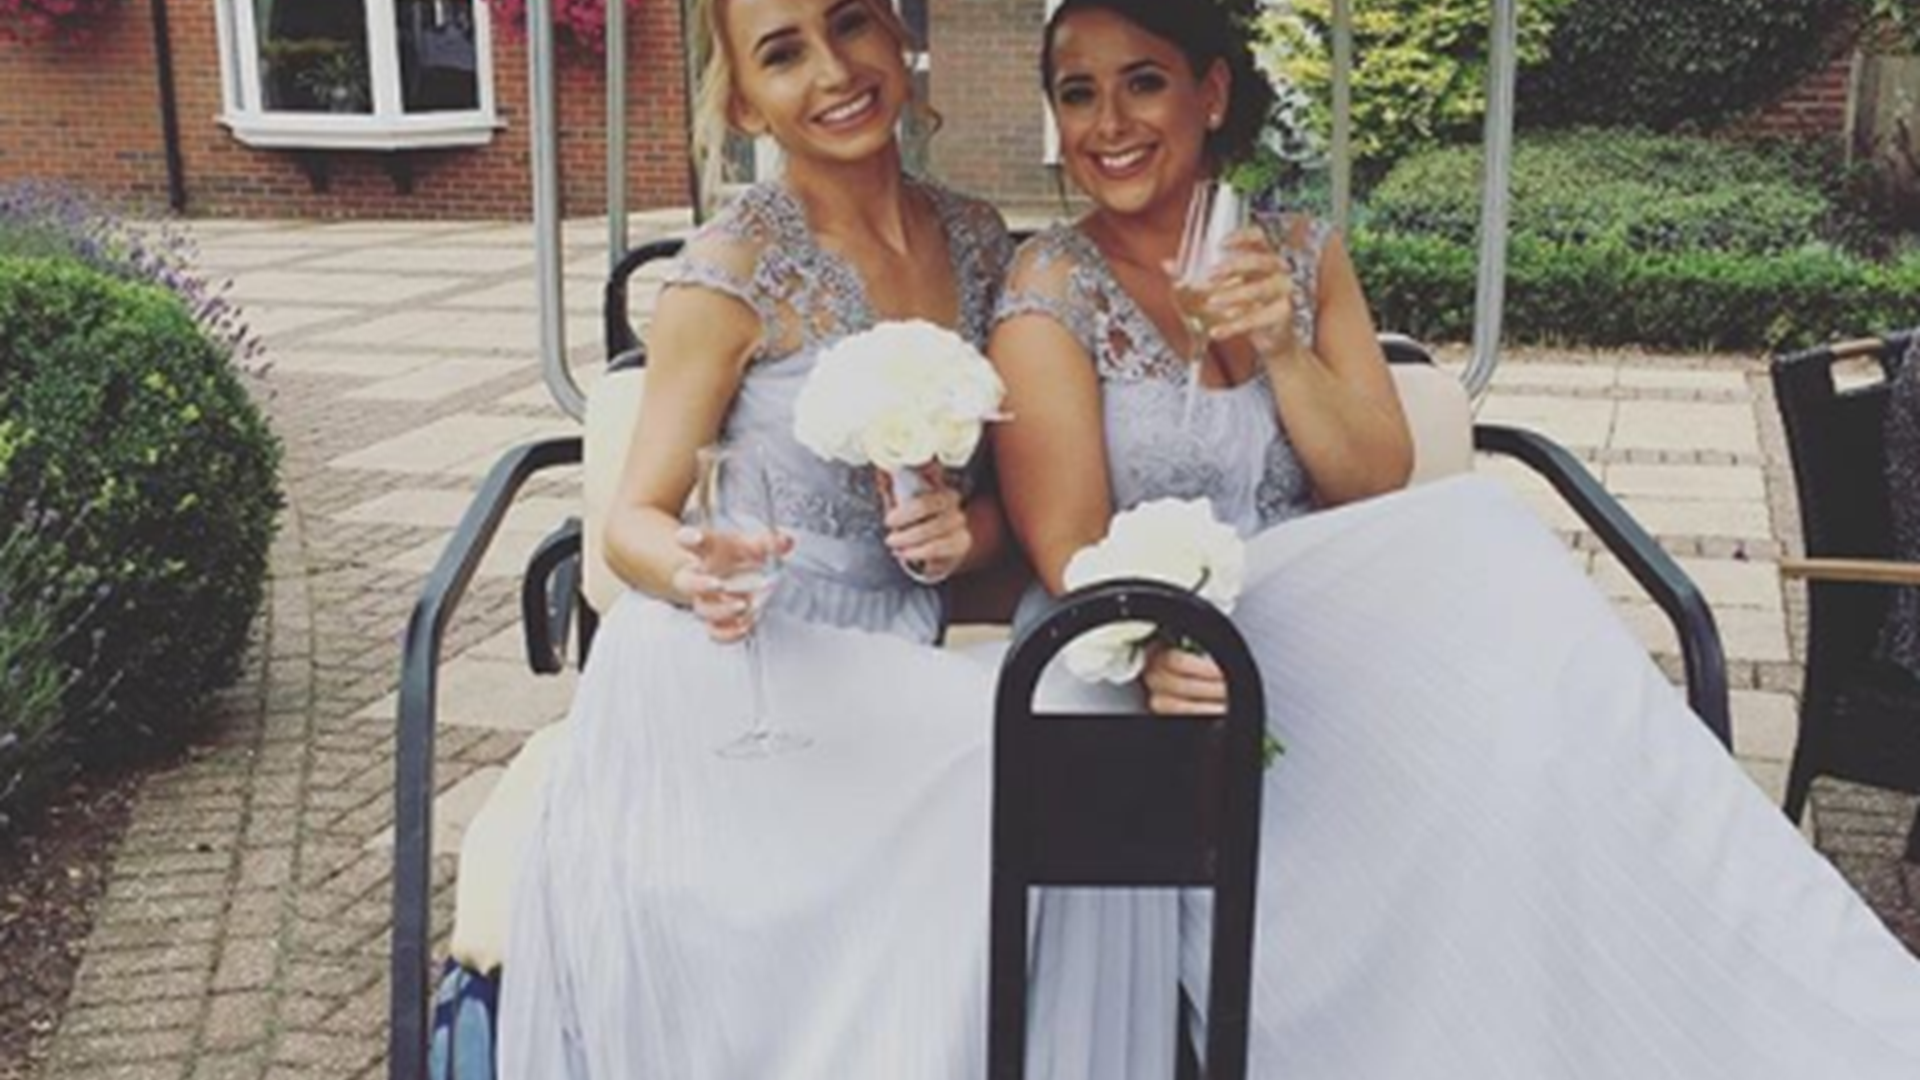 Two Bridesmaids posing and celebrating with champagne in a golf cart